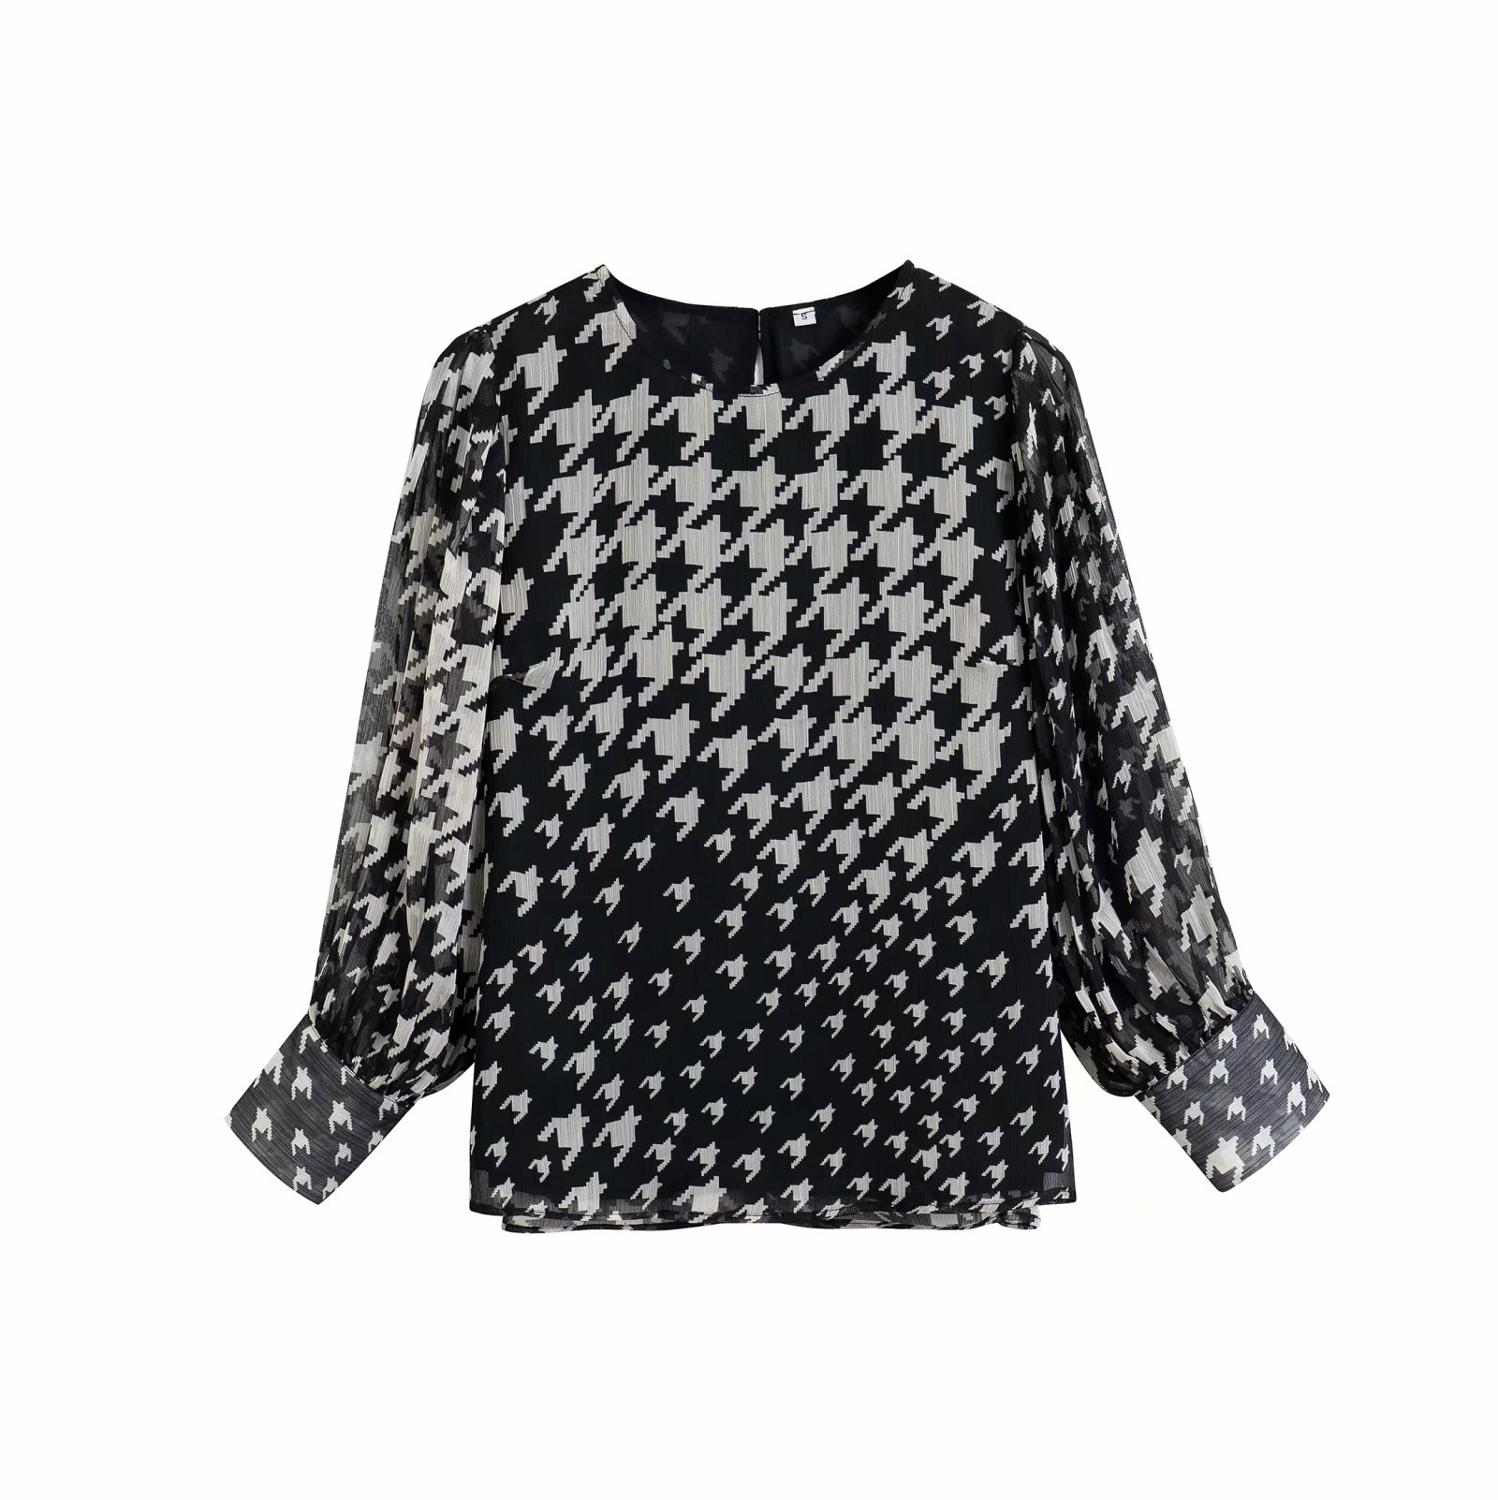 New Women Vintage O Neck Houndstooth Print Casual Smock Shirts Blouses Women Chic Pullover Roupas Femininas Chemise Tops LS6469